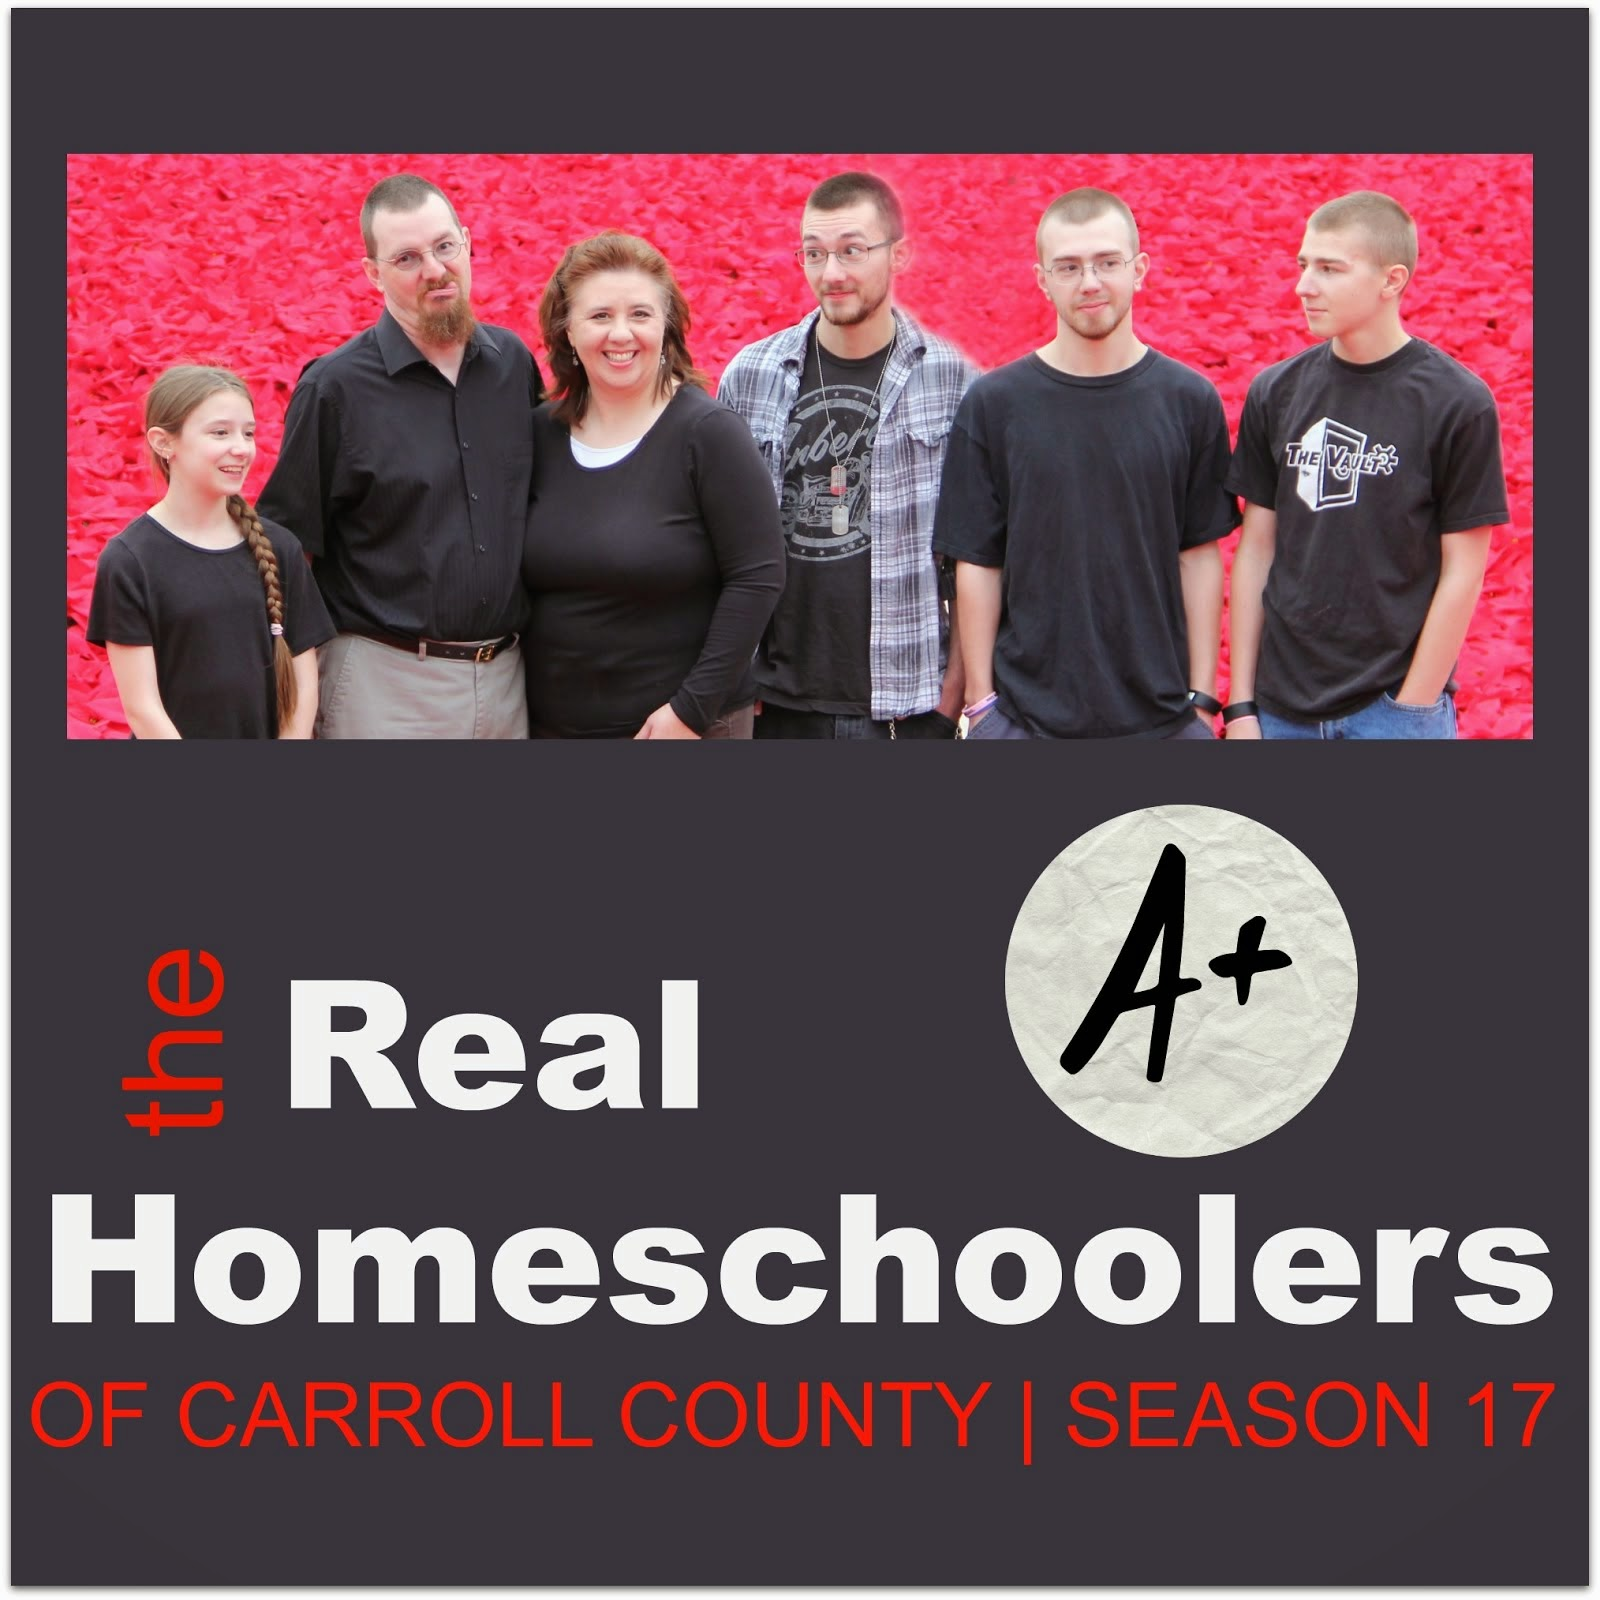 The Real Homeschoolers